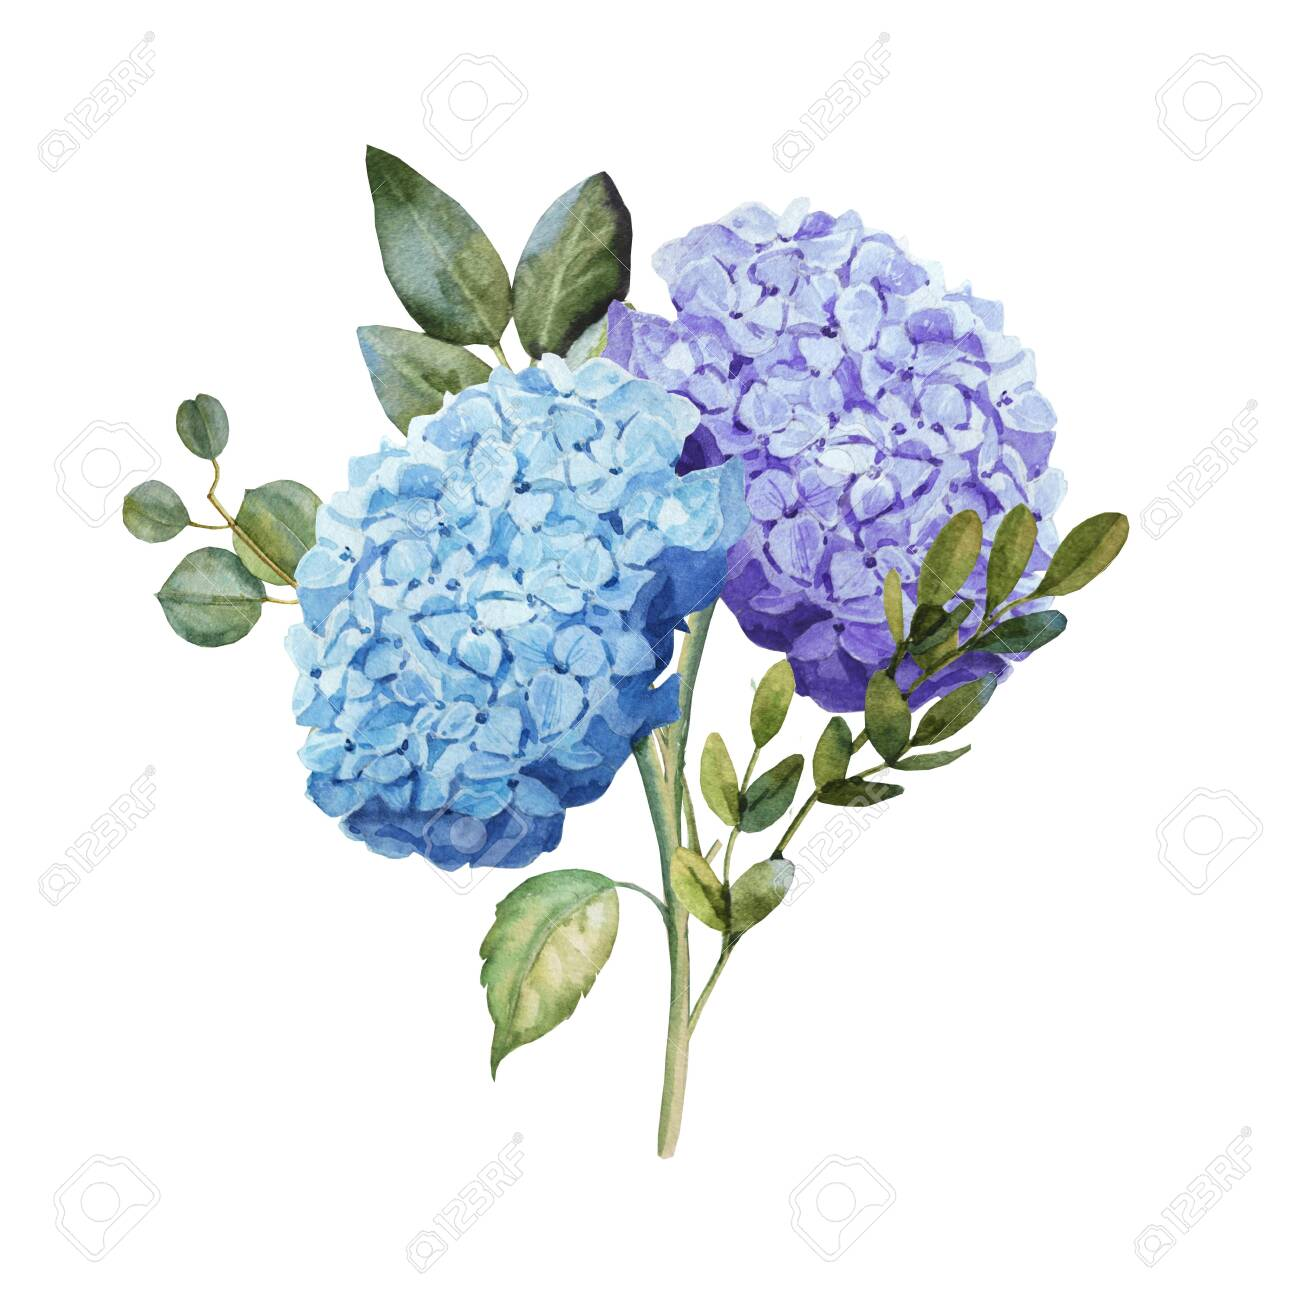 Watercolor Blue Hydrangea Flower Bouquet With Leaves Wedding Stock